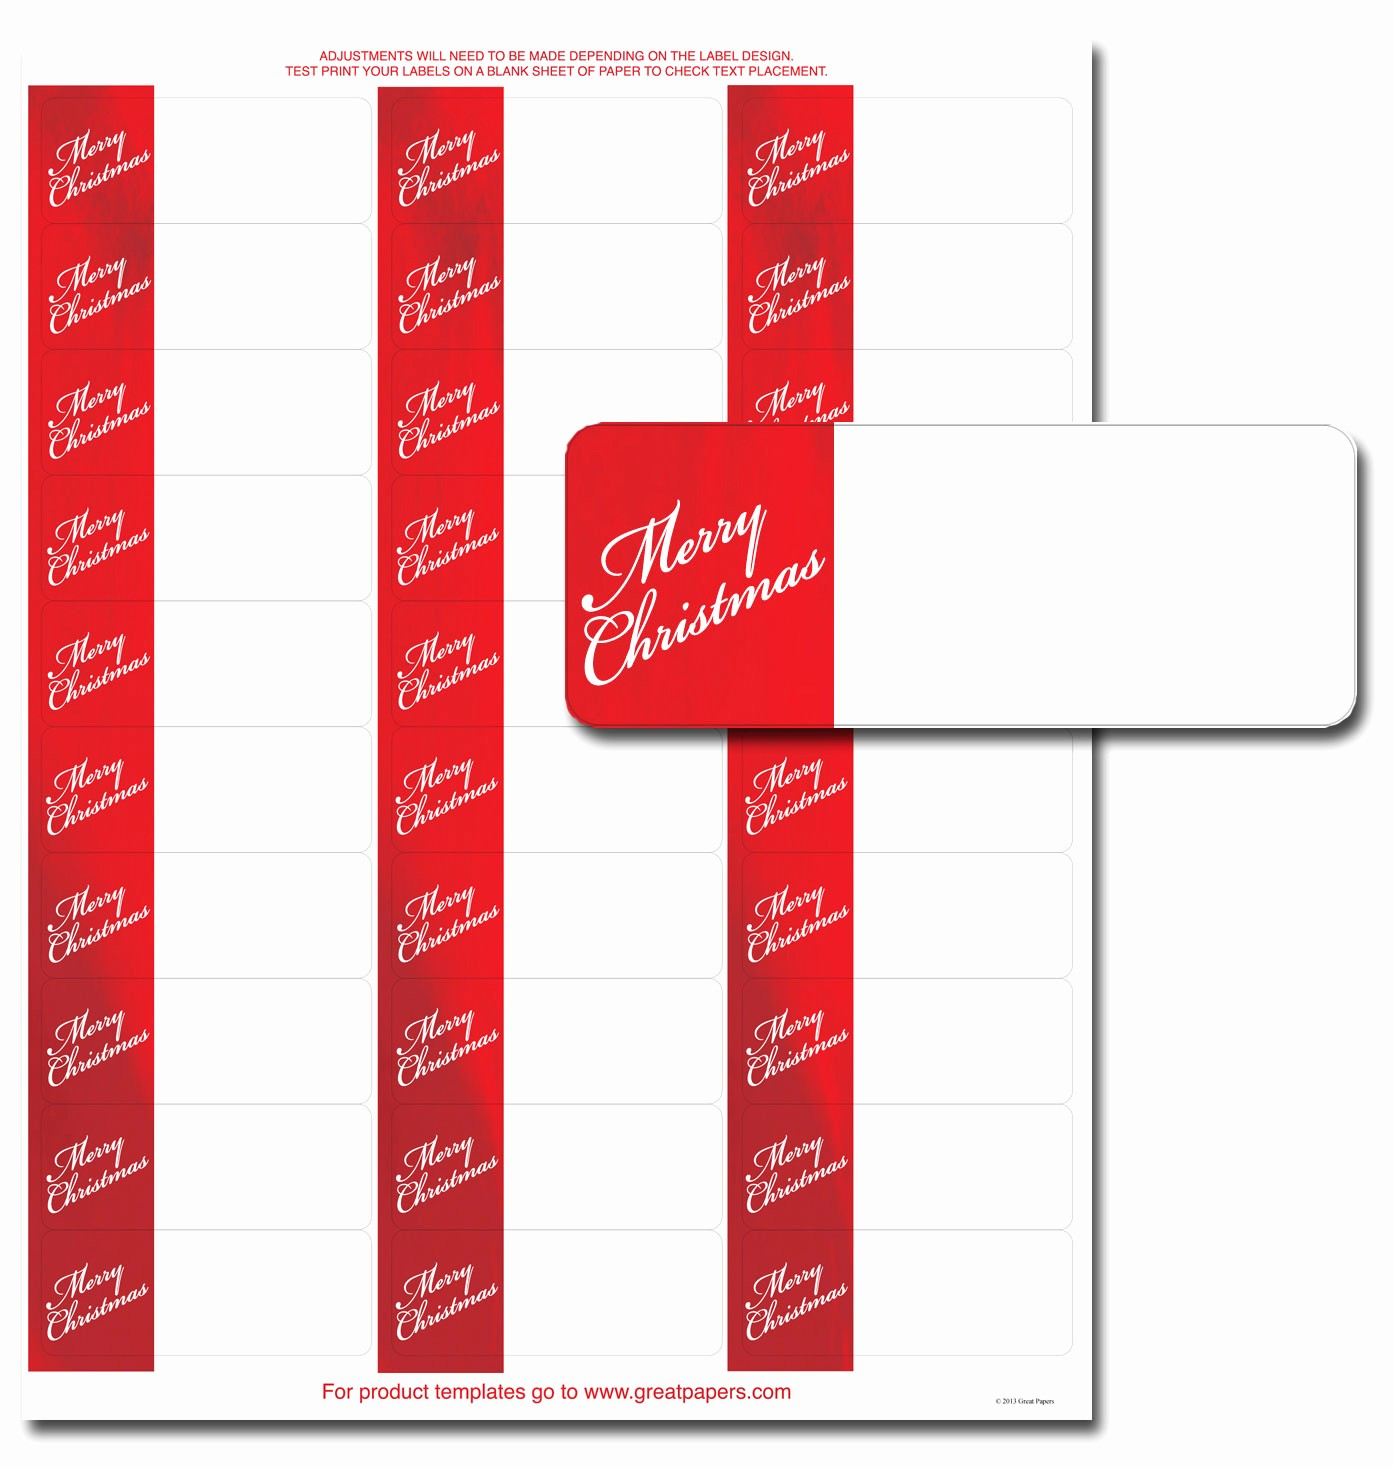 Free Printable Christmas Mailing Labels Luxury Free Printable Christmas Address Labels Avery 5160 Made